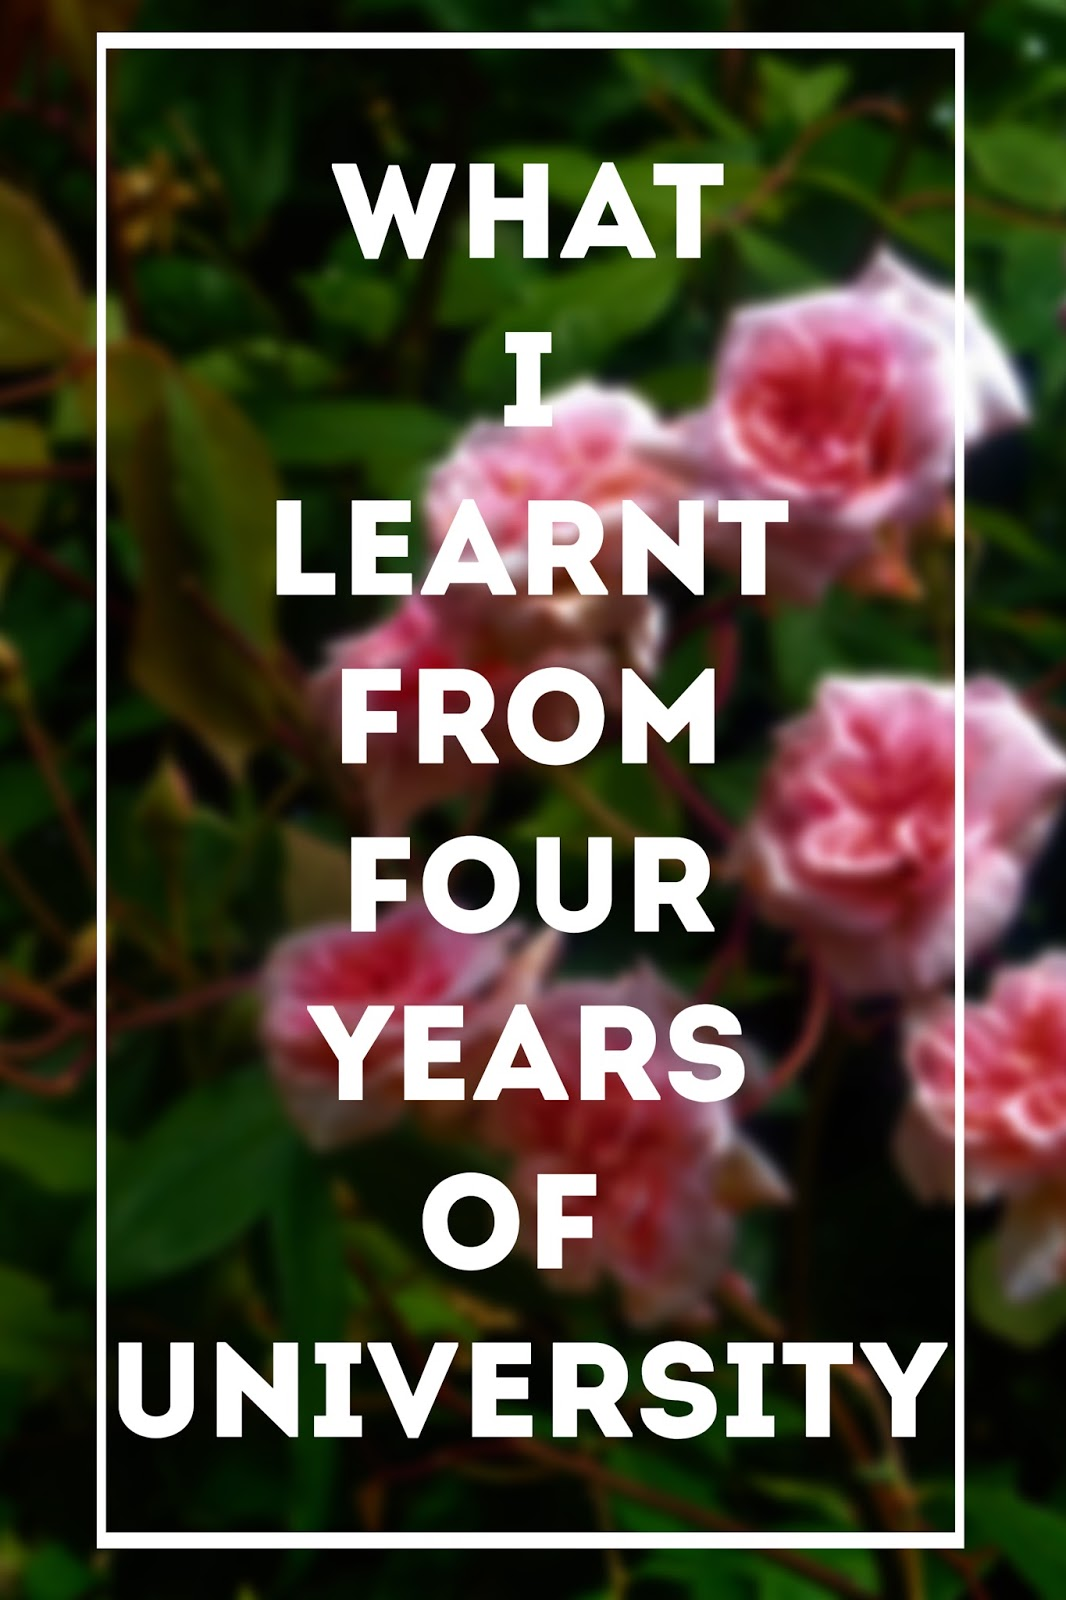 What I Learnt From Four Years of University